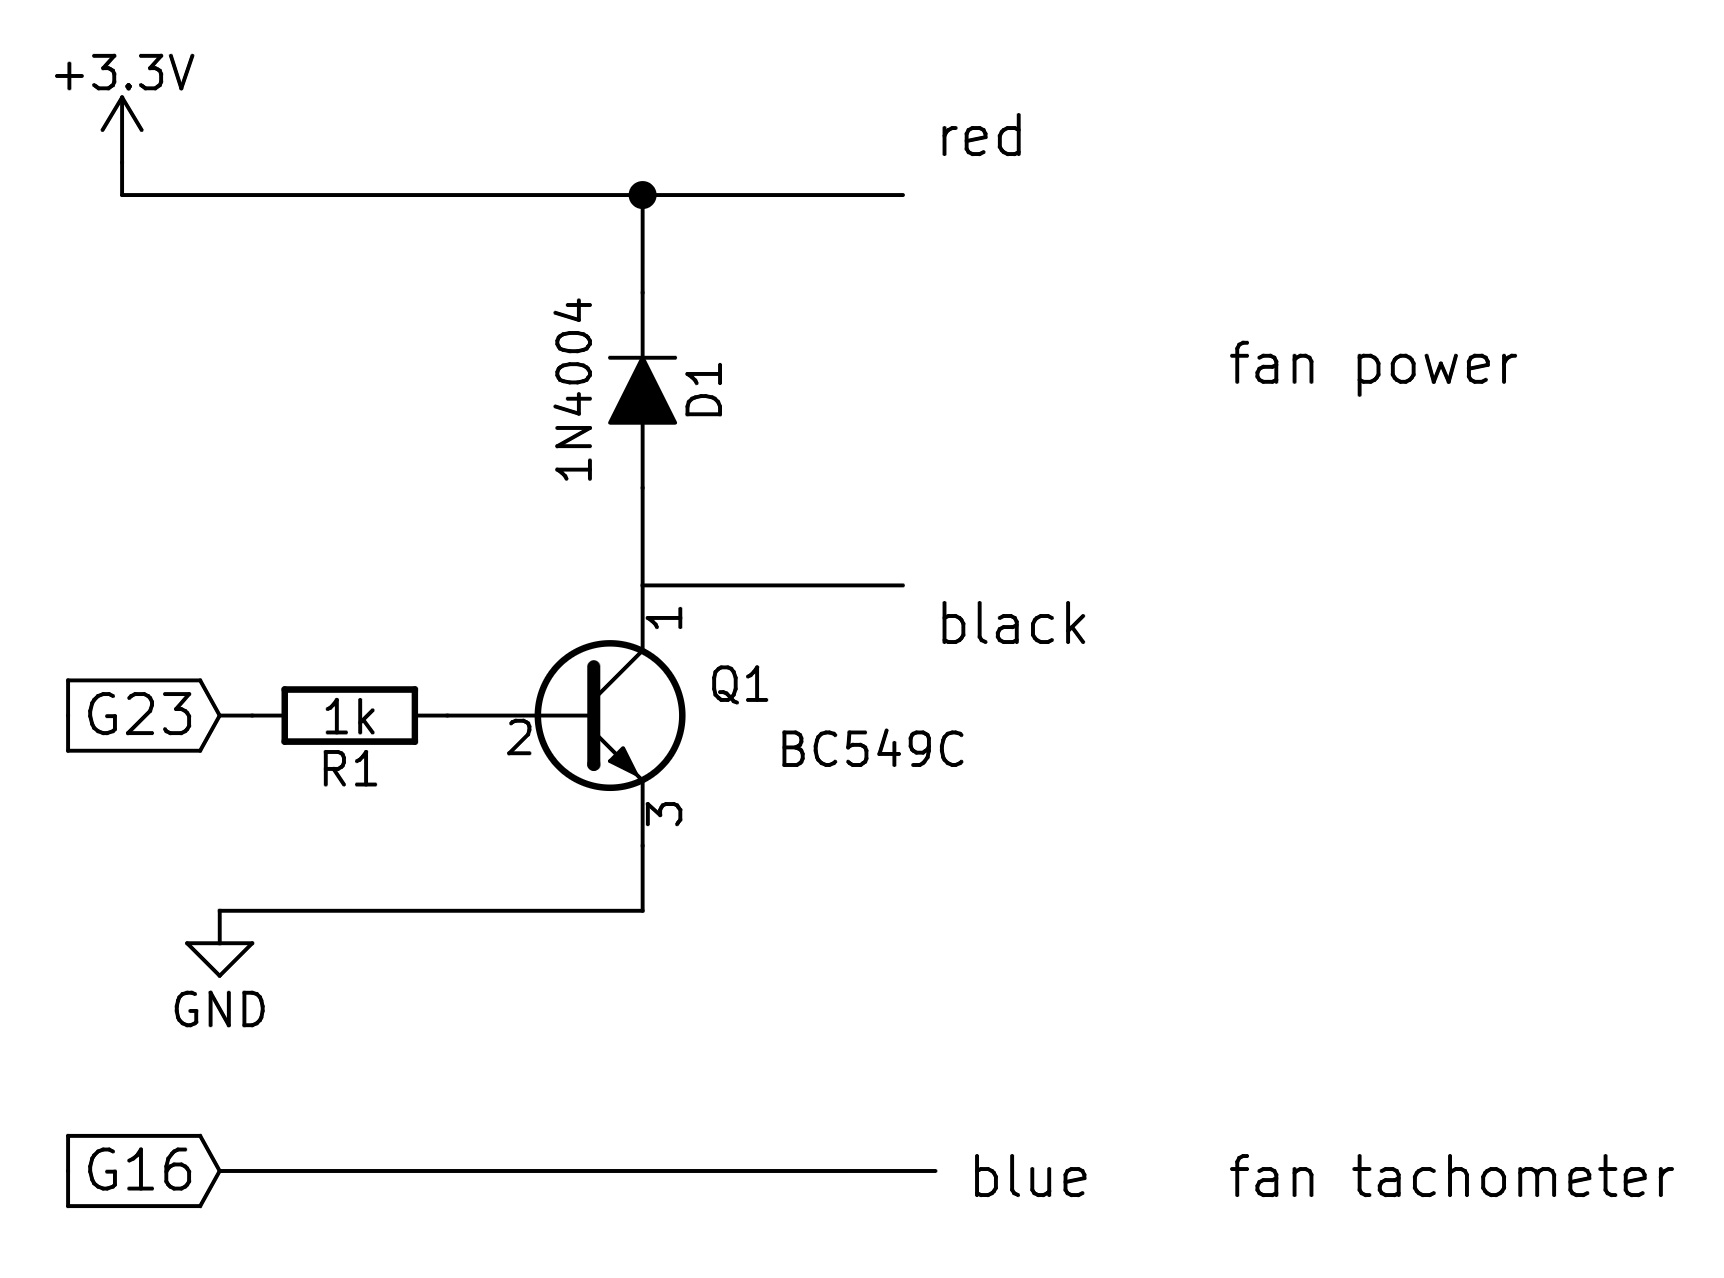 wiring 3w pwm fan wire diagram diagrams for wiring bathroom fan and lights  at alyssarenee.co